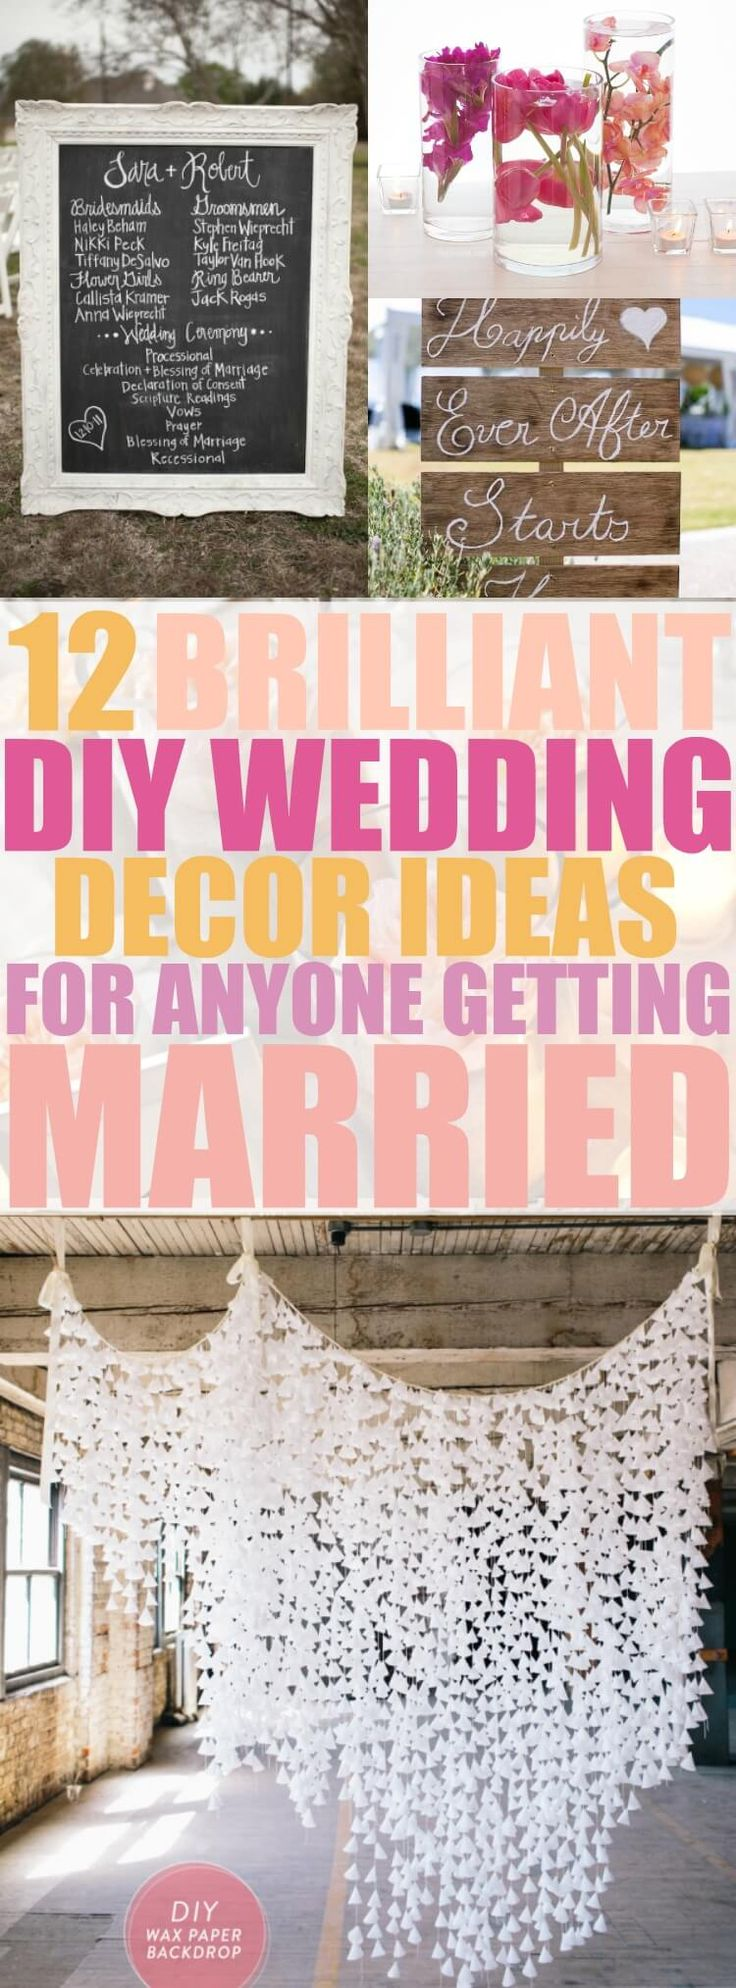 These 12 DIY Wedding Decor ideas are THE BEST! These ideas will make my wedding look BEAUTIFUL without breaking my budget! Pinning this for later!